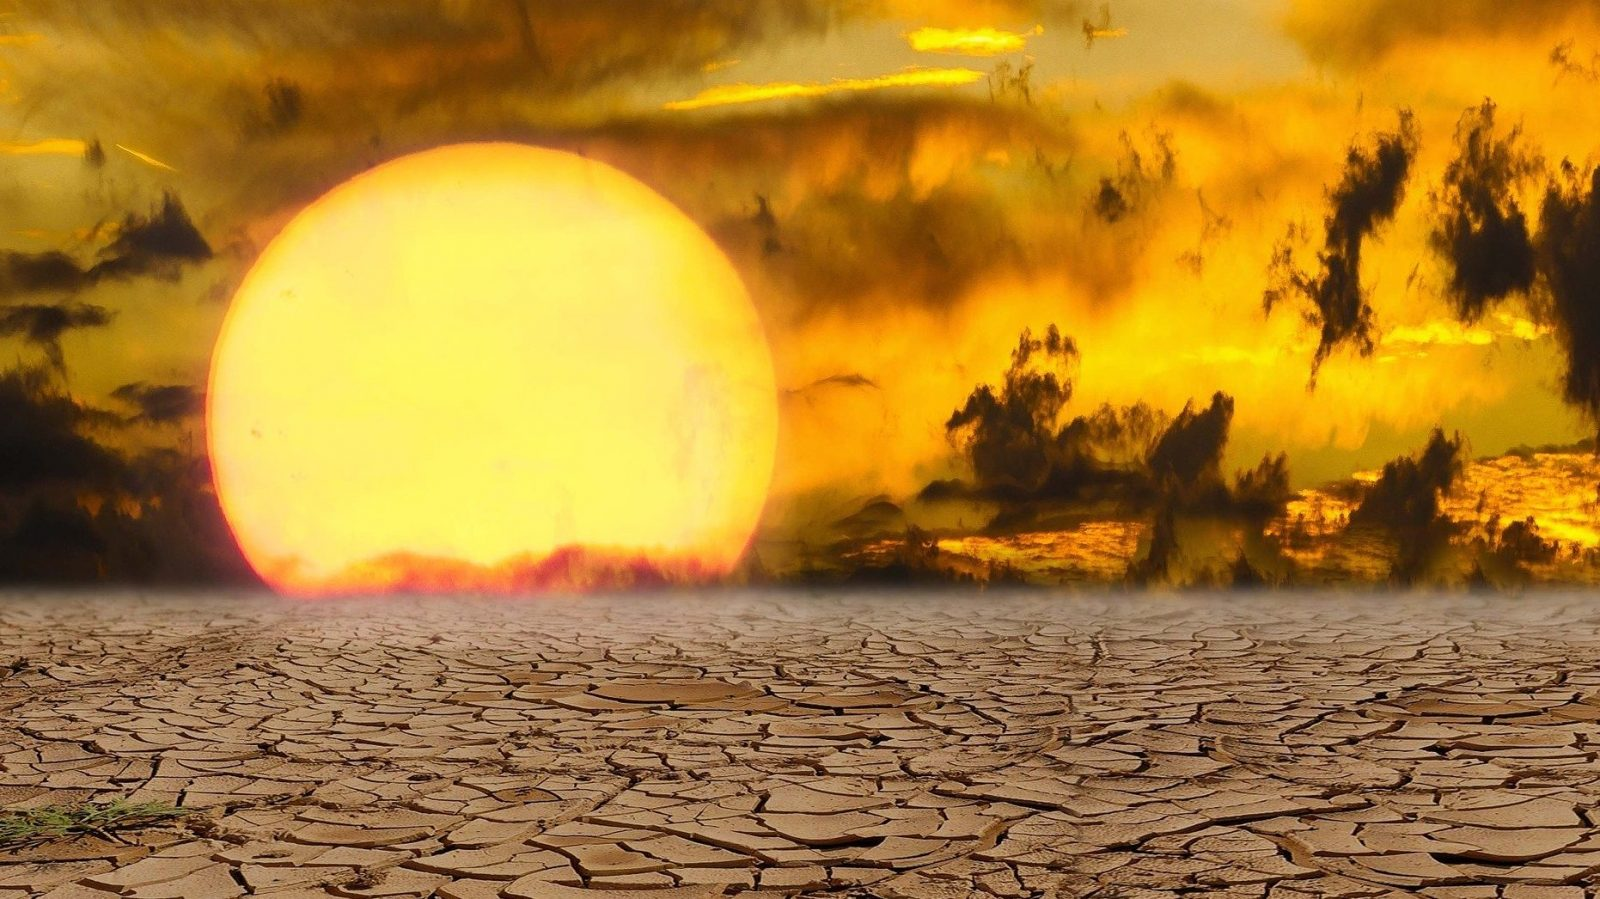 Part 2: Drought and Our Plans to Deal With it are Running Dry